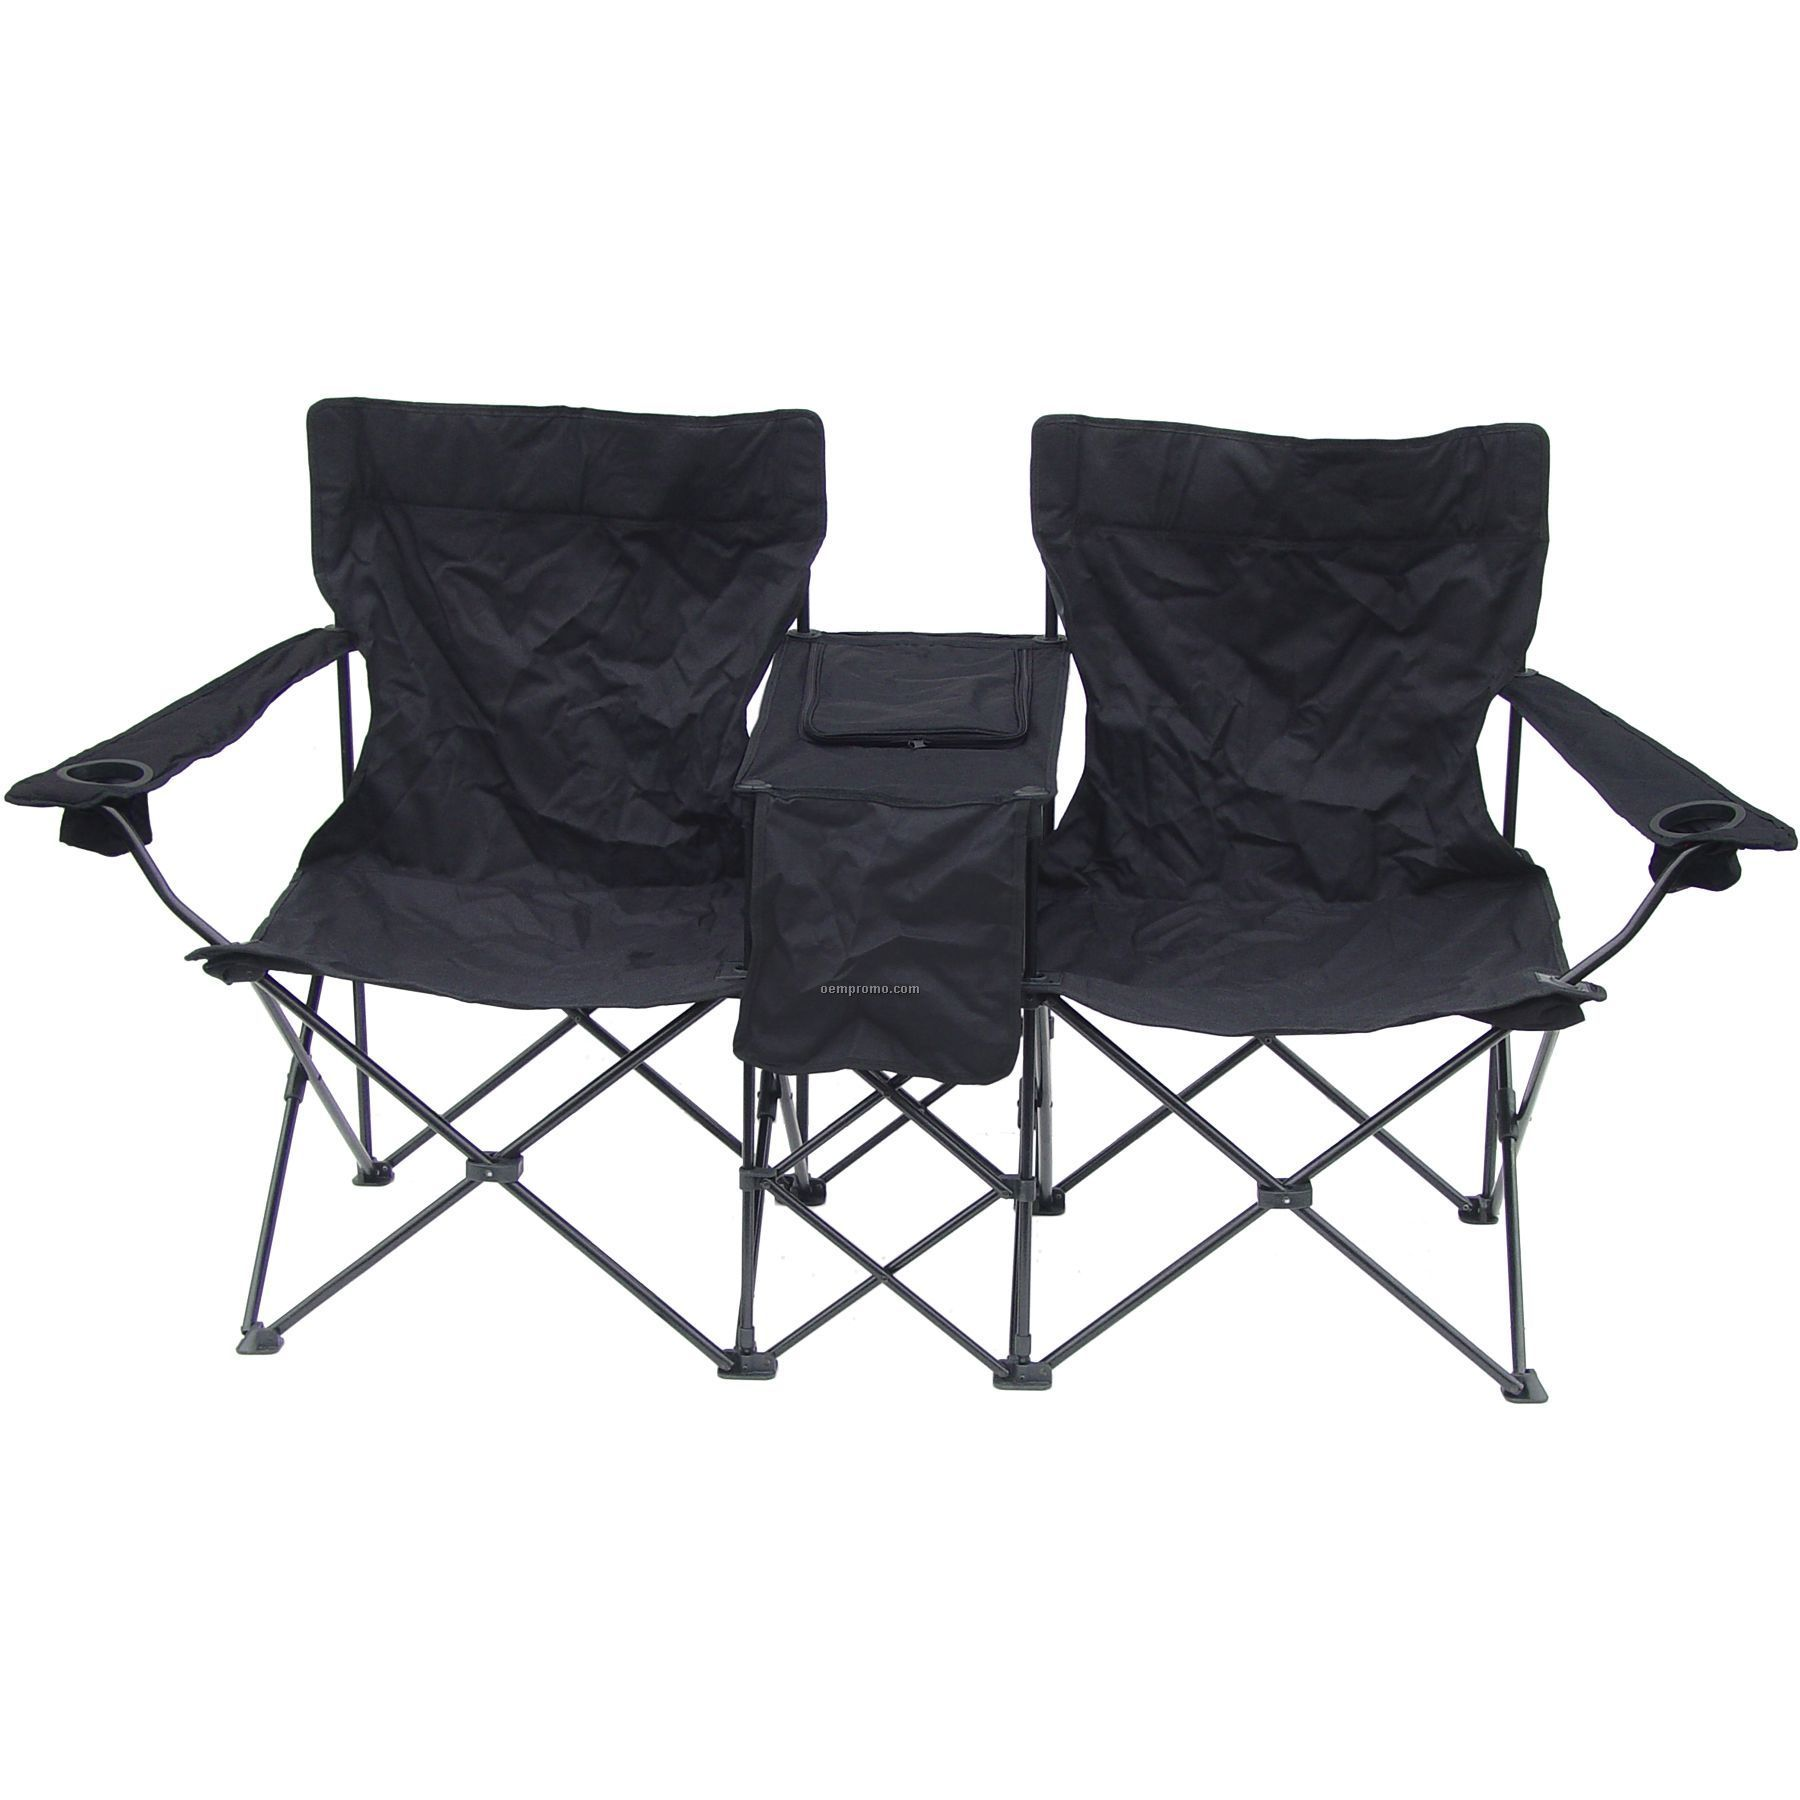 Direct Import Folding Double Chair With Center Table And Cooler China Wholesale Direct Import